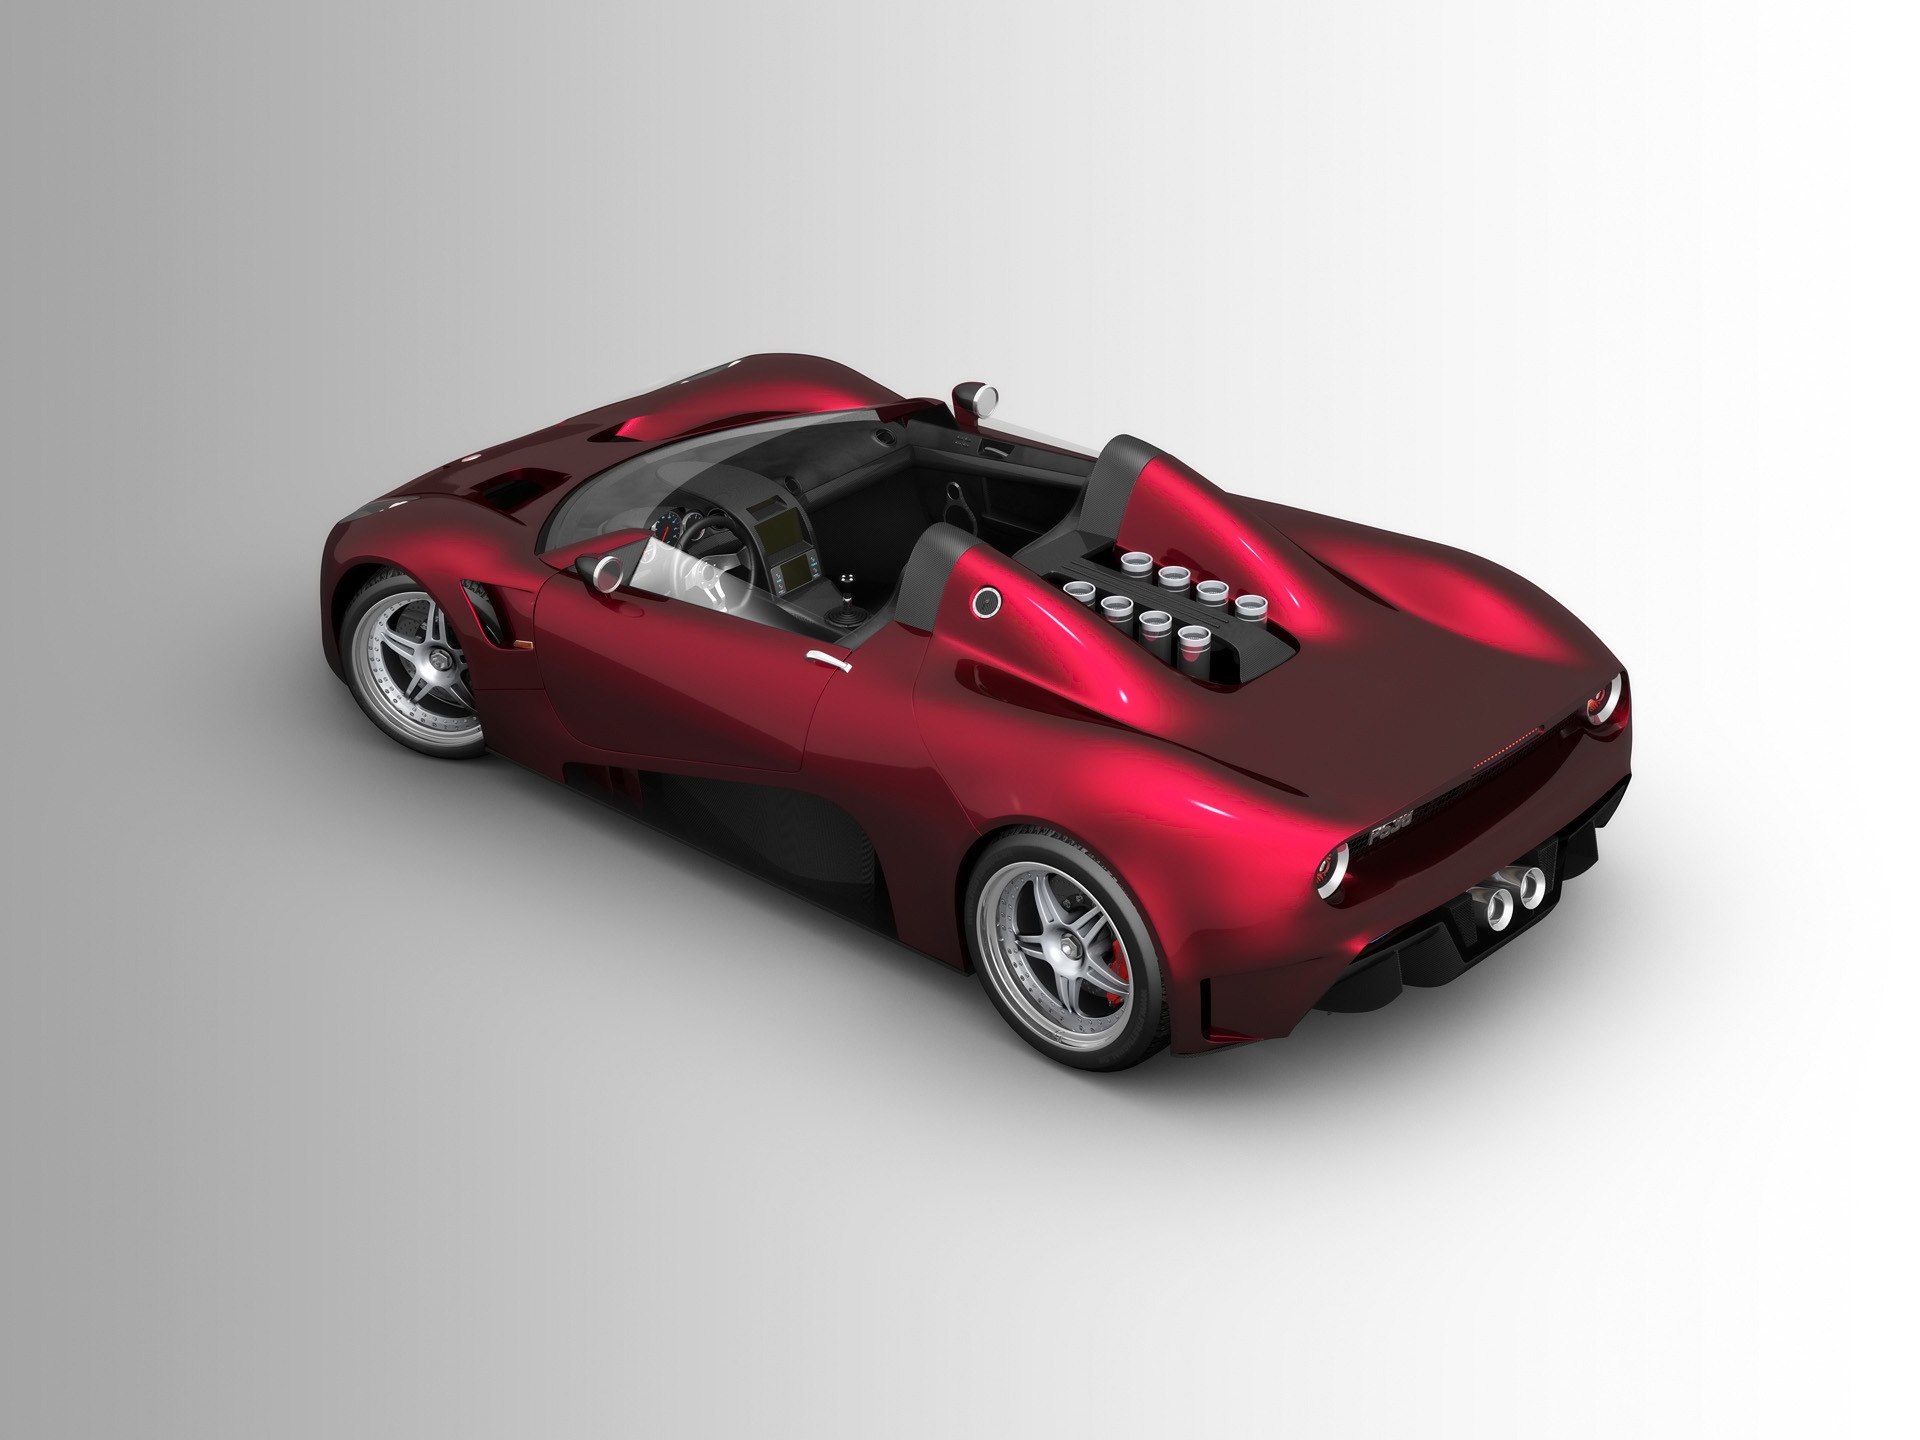 cars muscle Prototypes vehicles HD Wallpaper